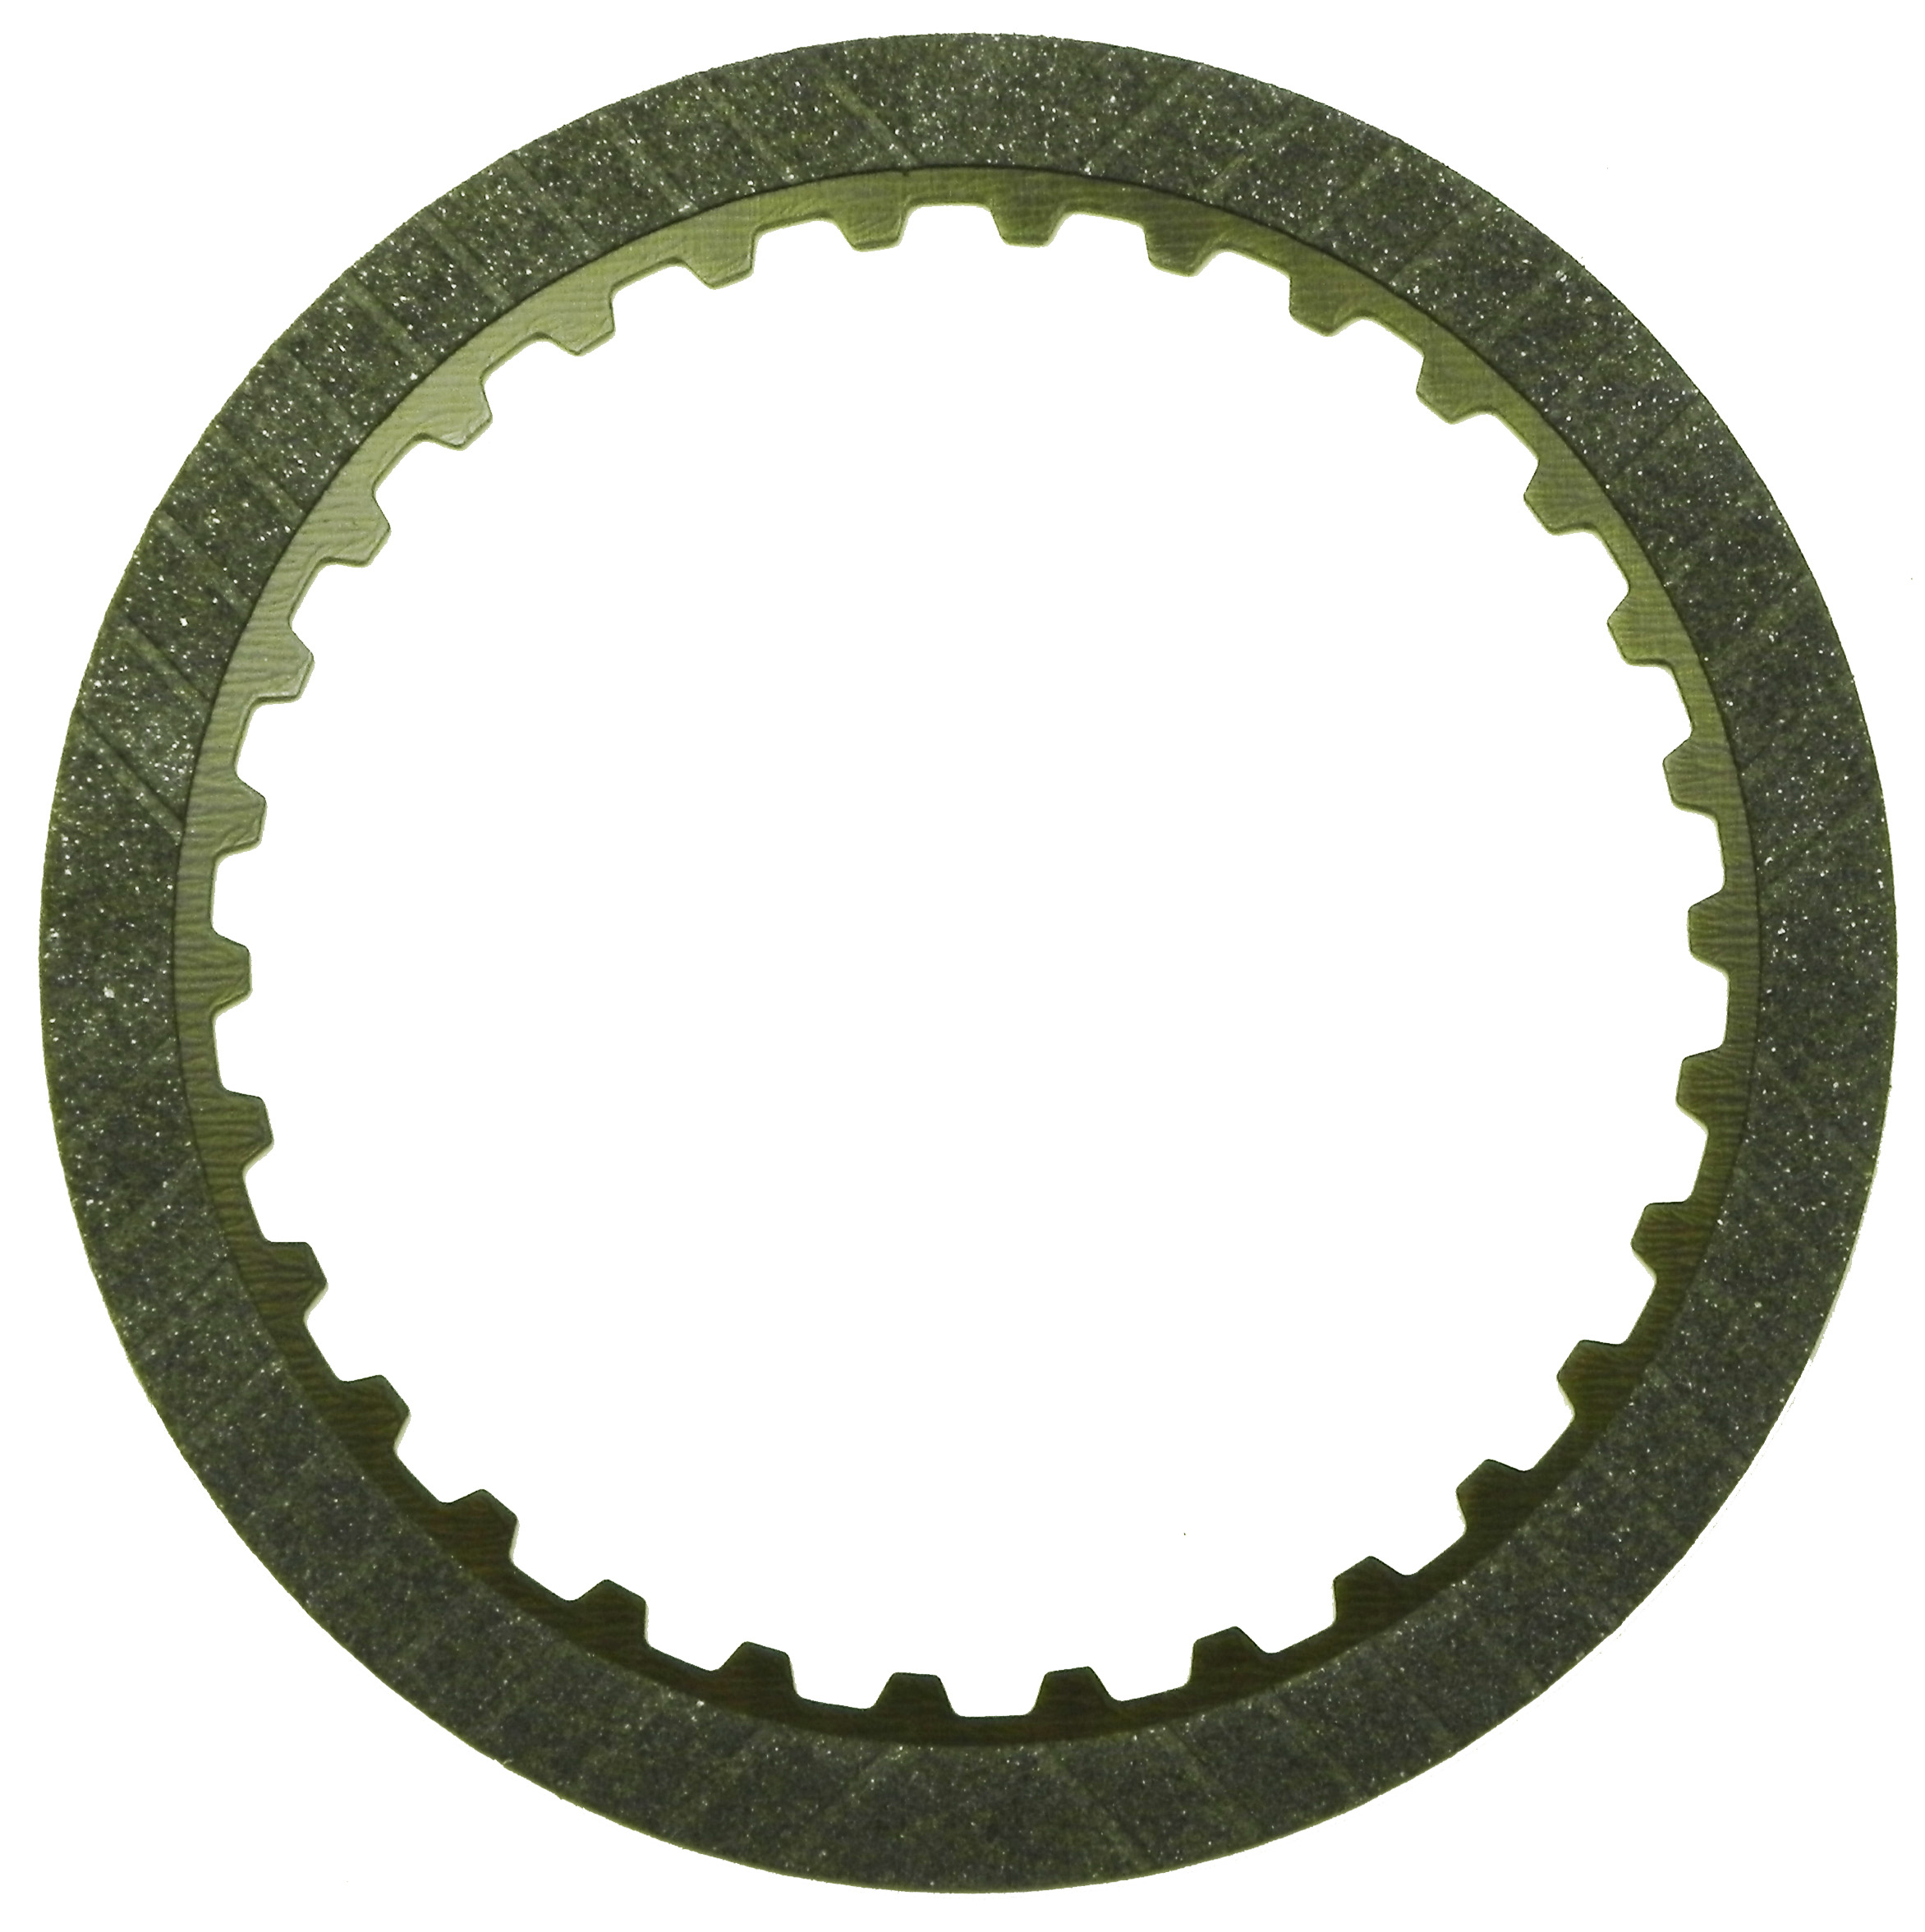 6R60, 6R75, 6R80, 6HP26, 6HP28, 09E High Energy Friction Clutch Plate